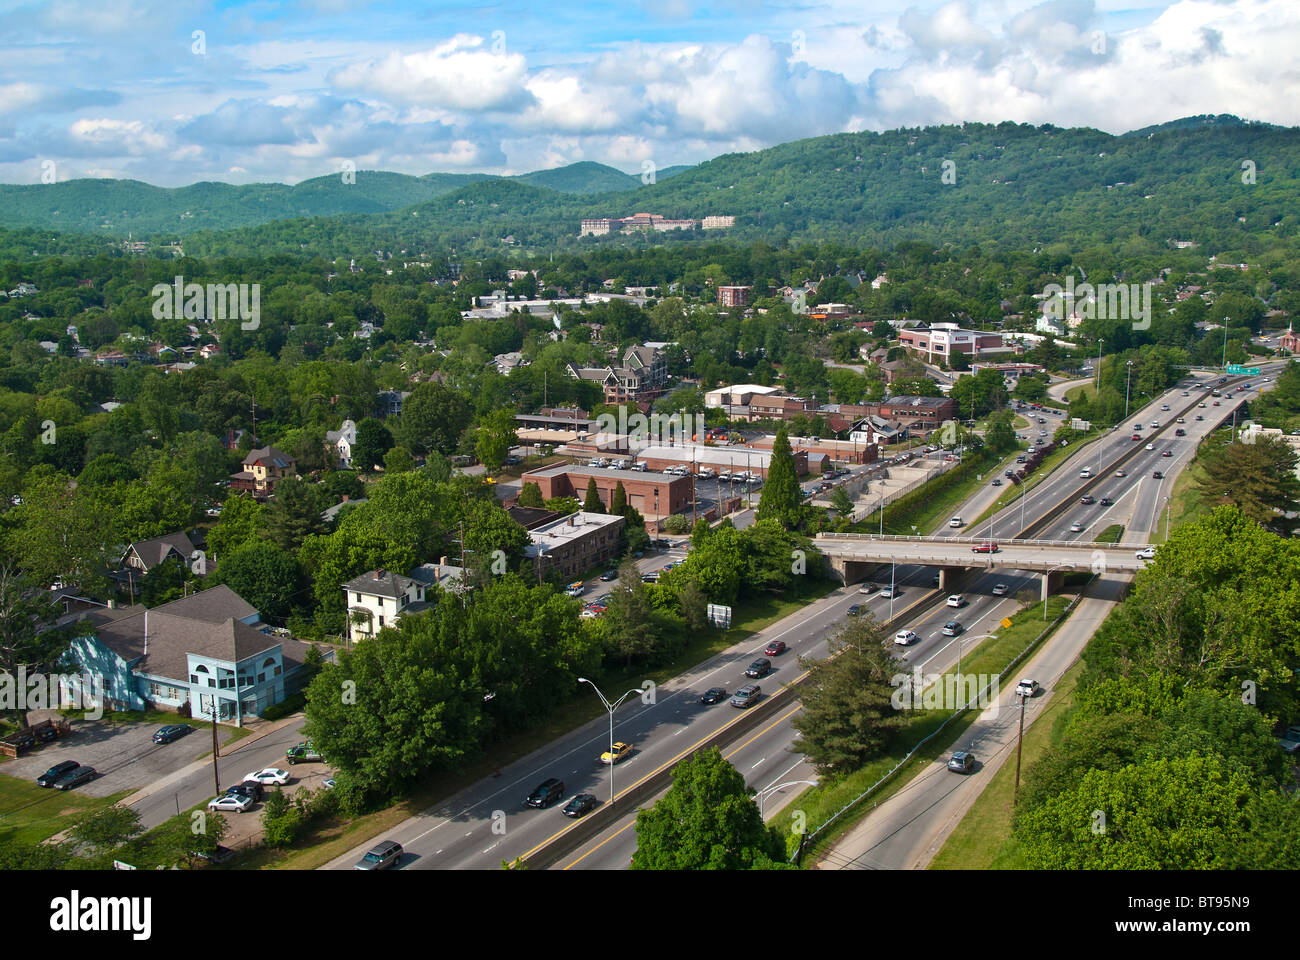 Overview of I-240 freeway and neighborhoods of Asheville, North Carolina, USA - Stock Image